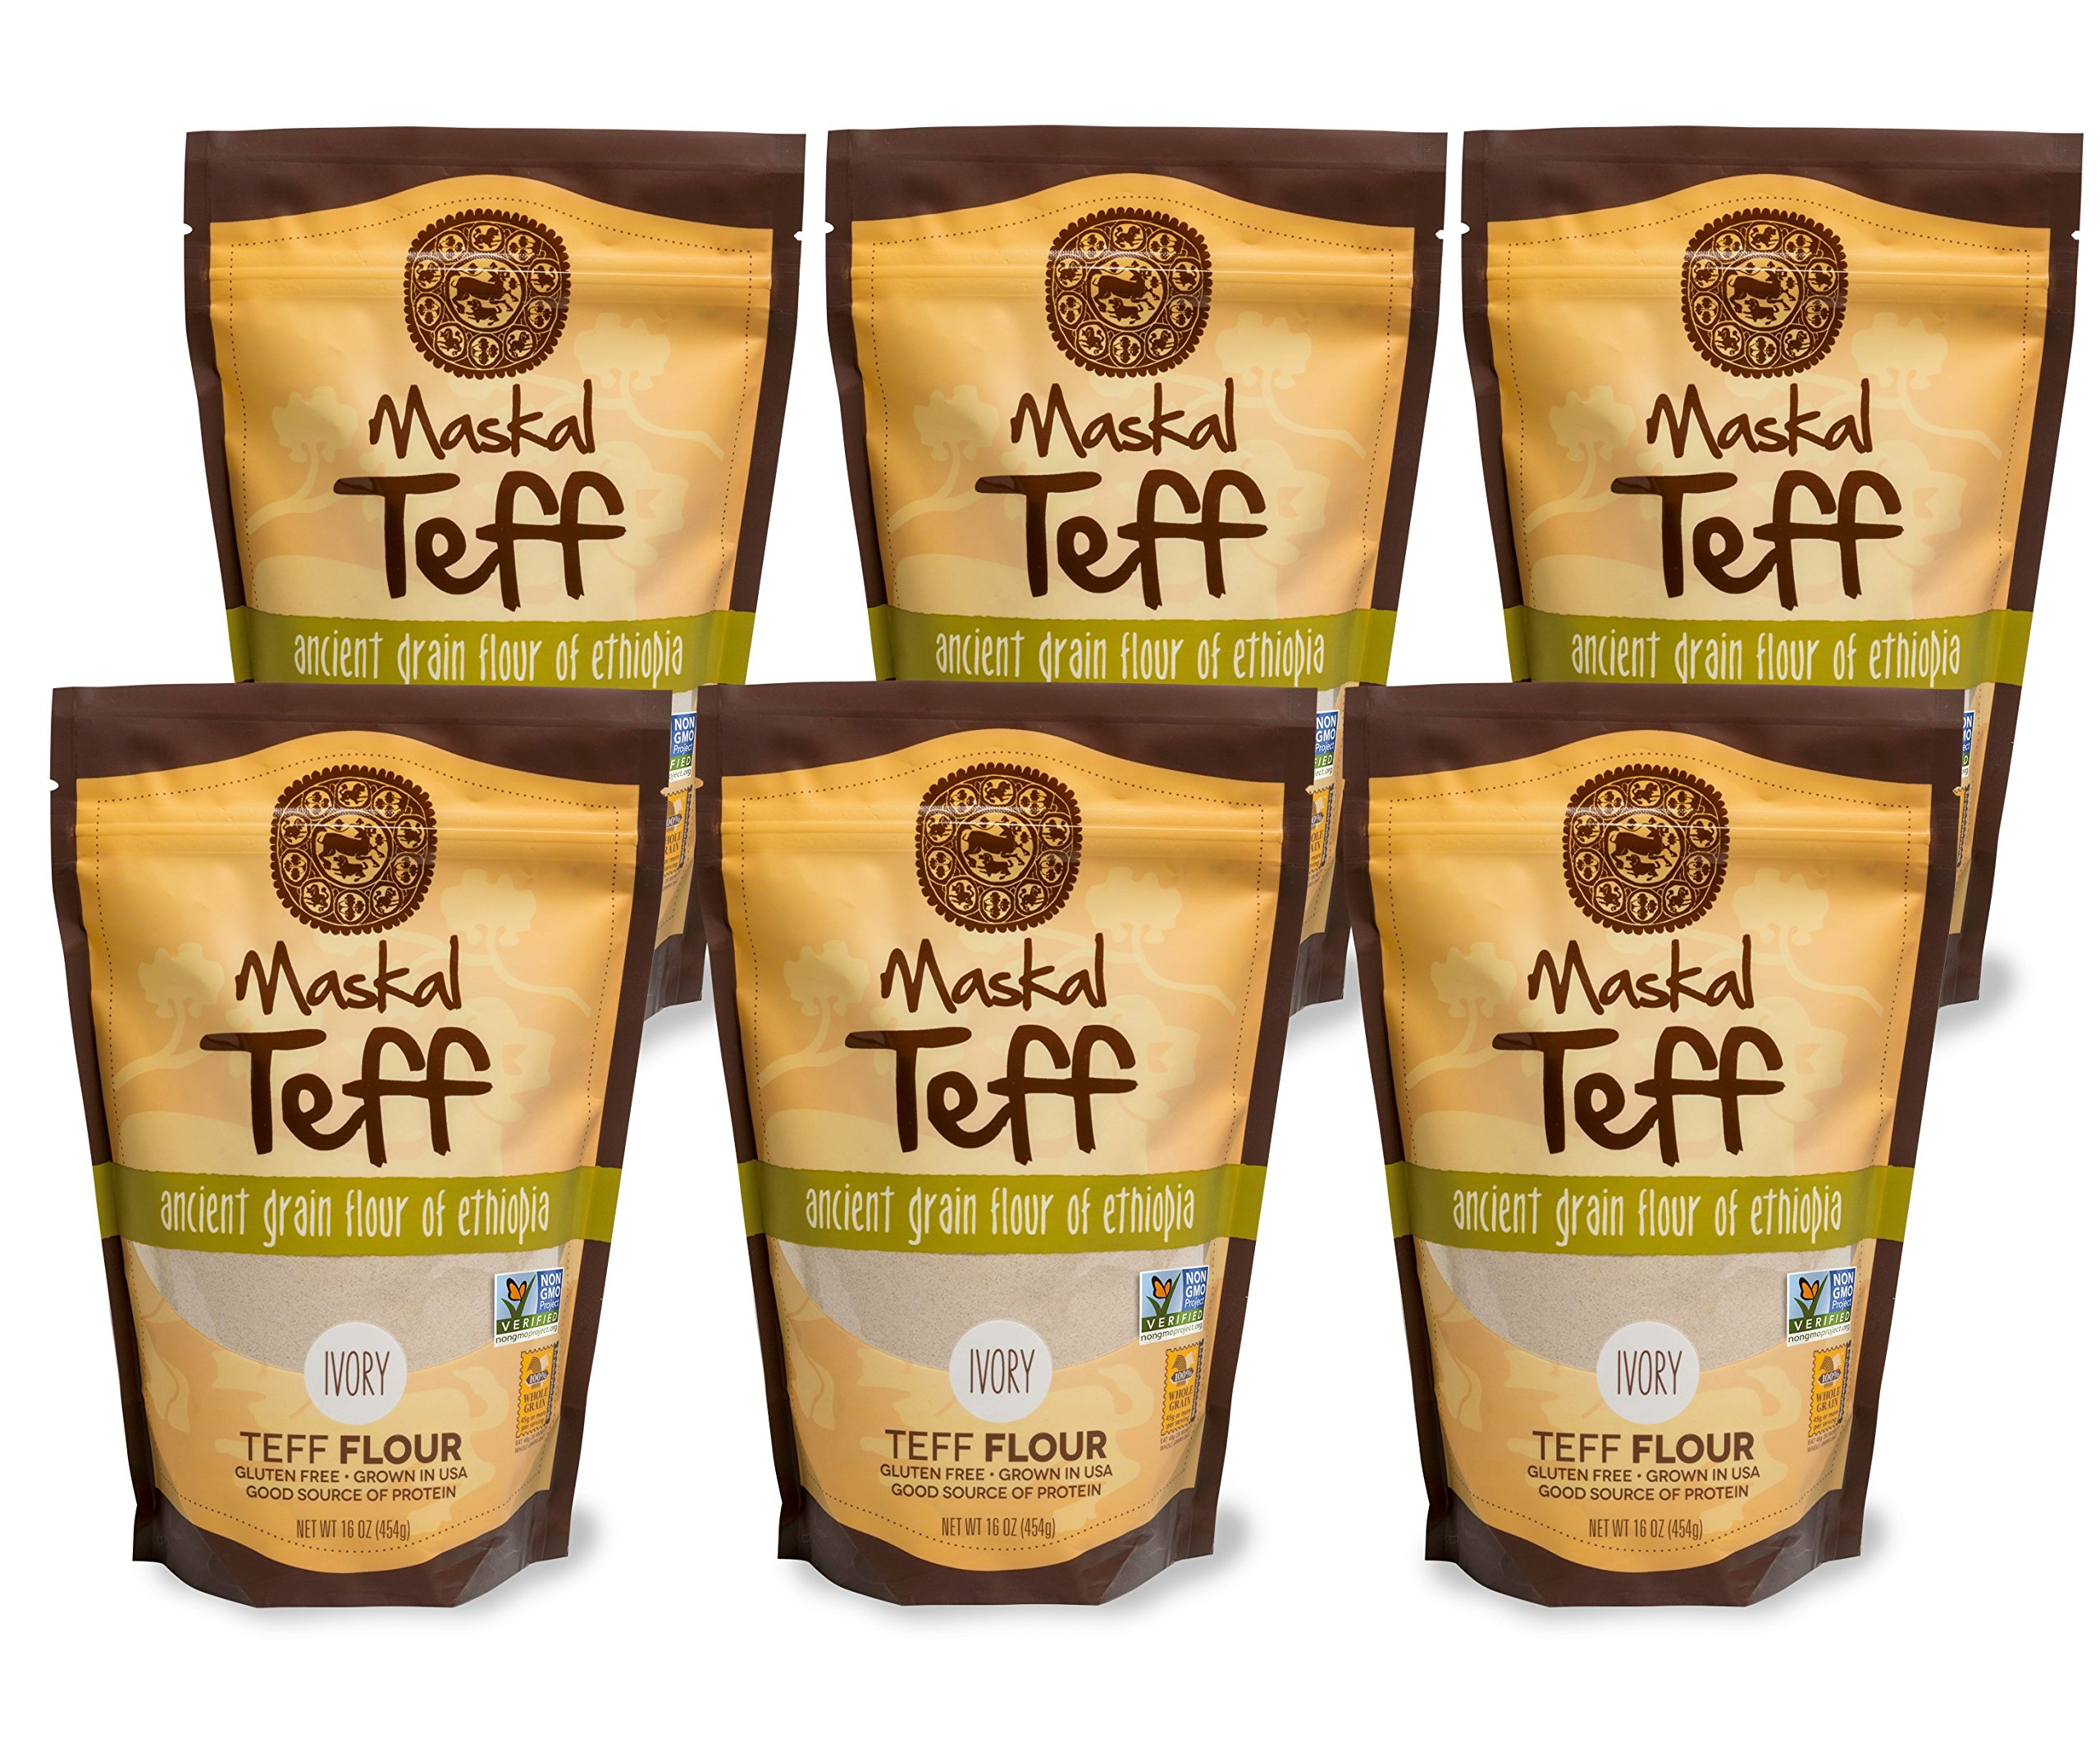 Amazon.com : Maskal Teff Brown Teff Flour, 16 Ounce (6